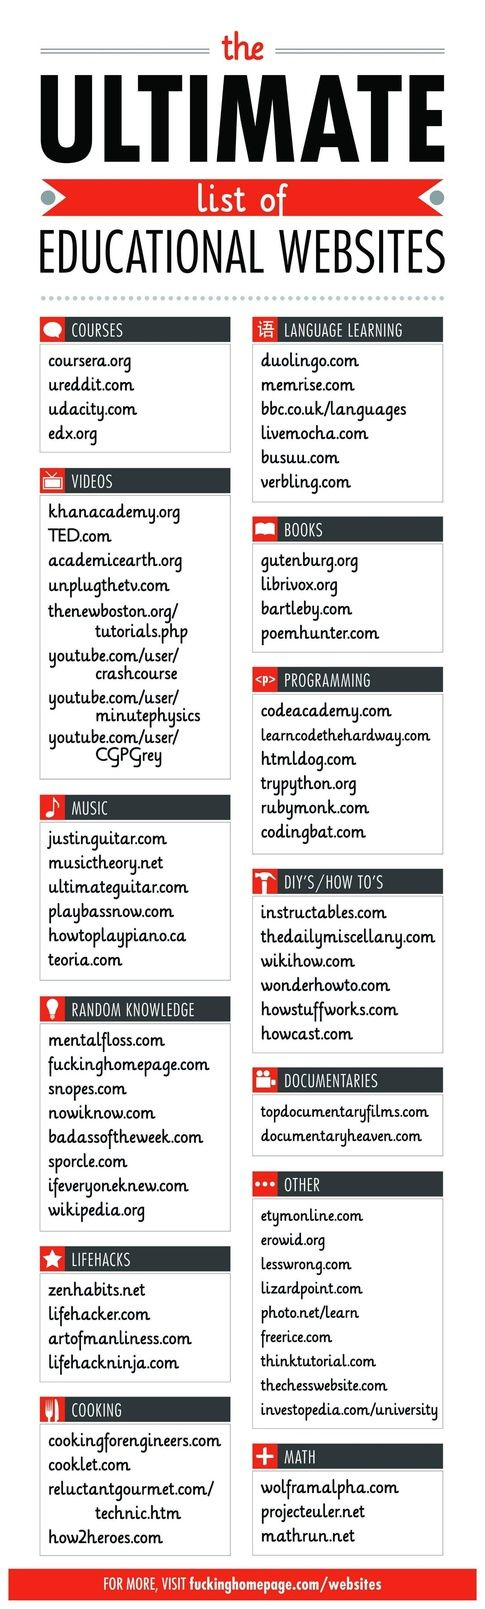 The Ultimate List of Educational Websites | Student ...